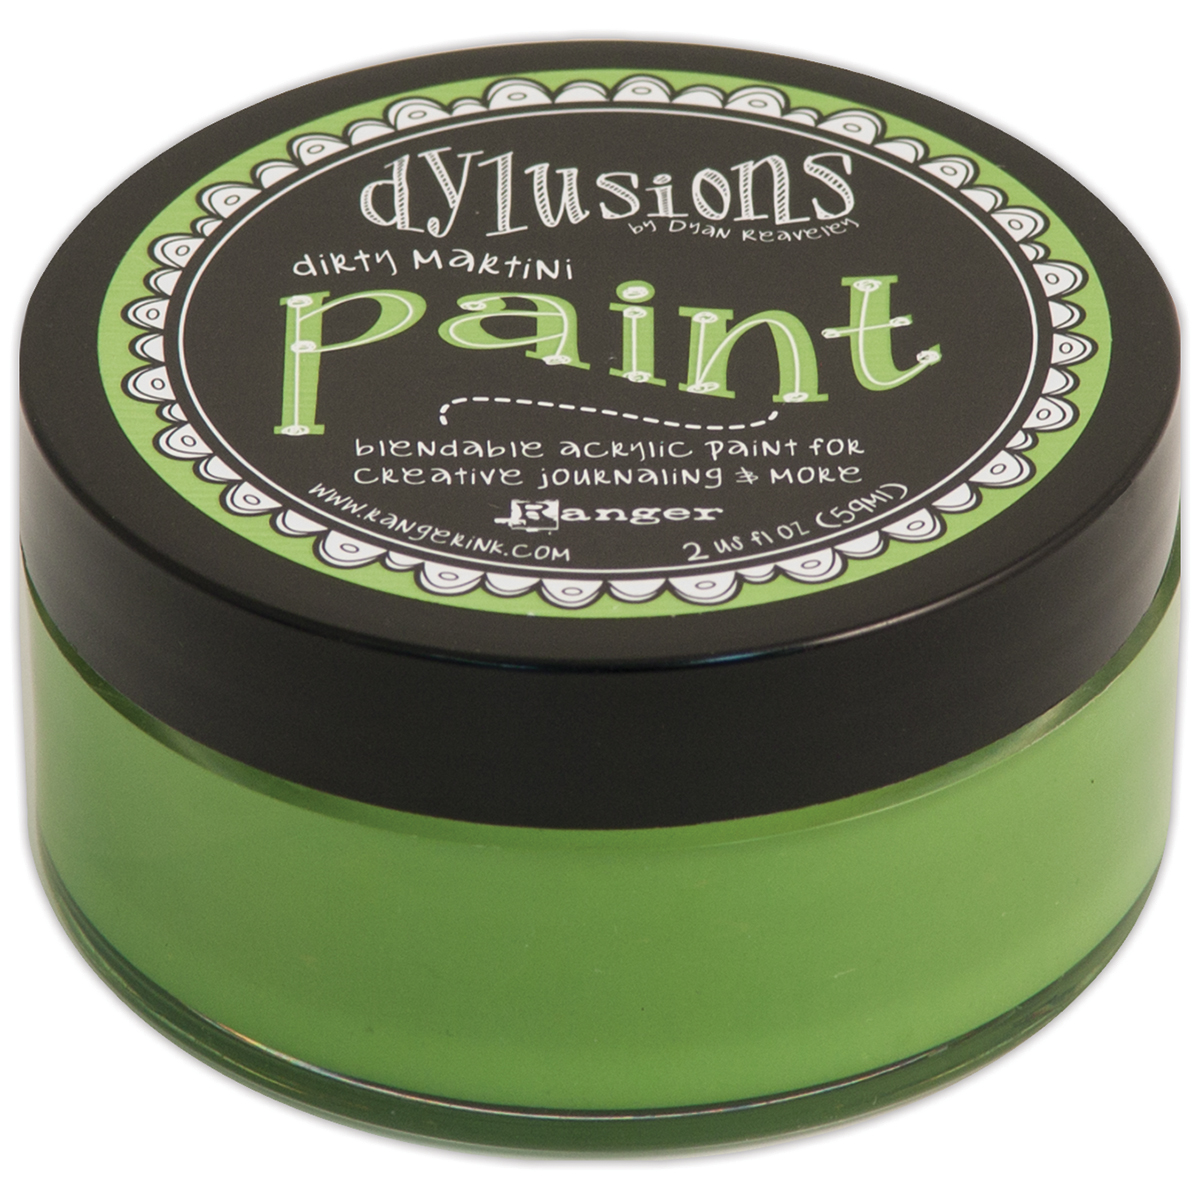 Dylusions Blendable Acrylic Paint 2oz-Dirty Martini